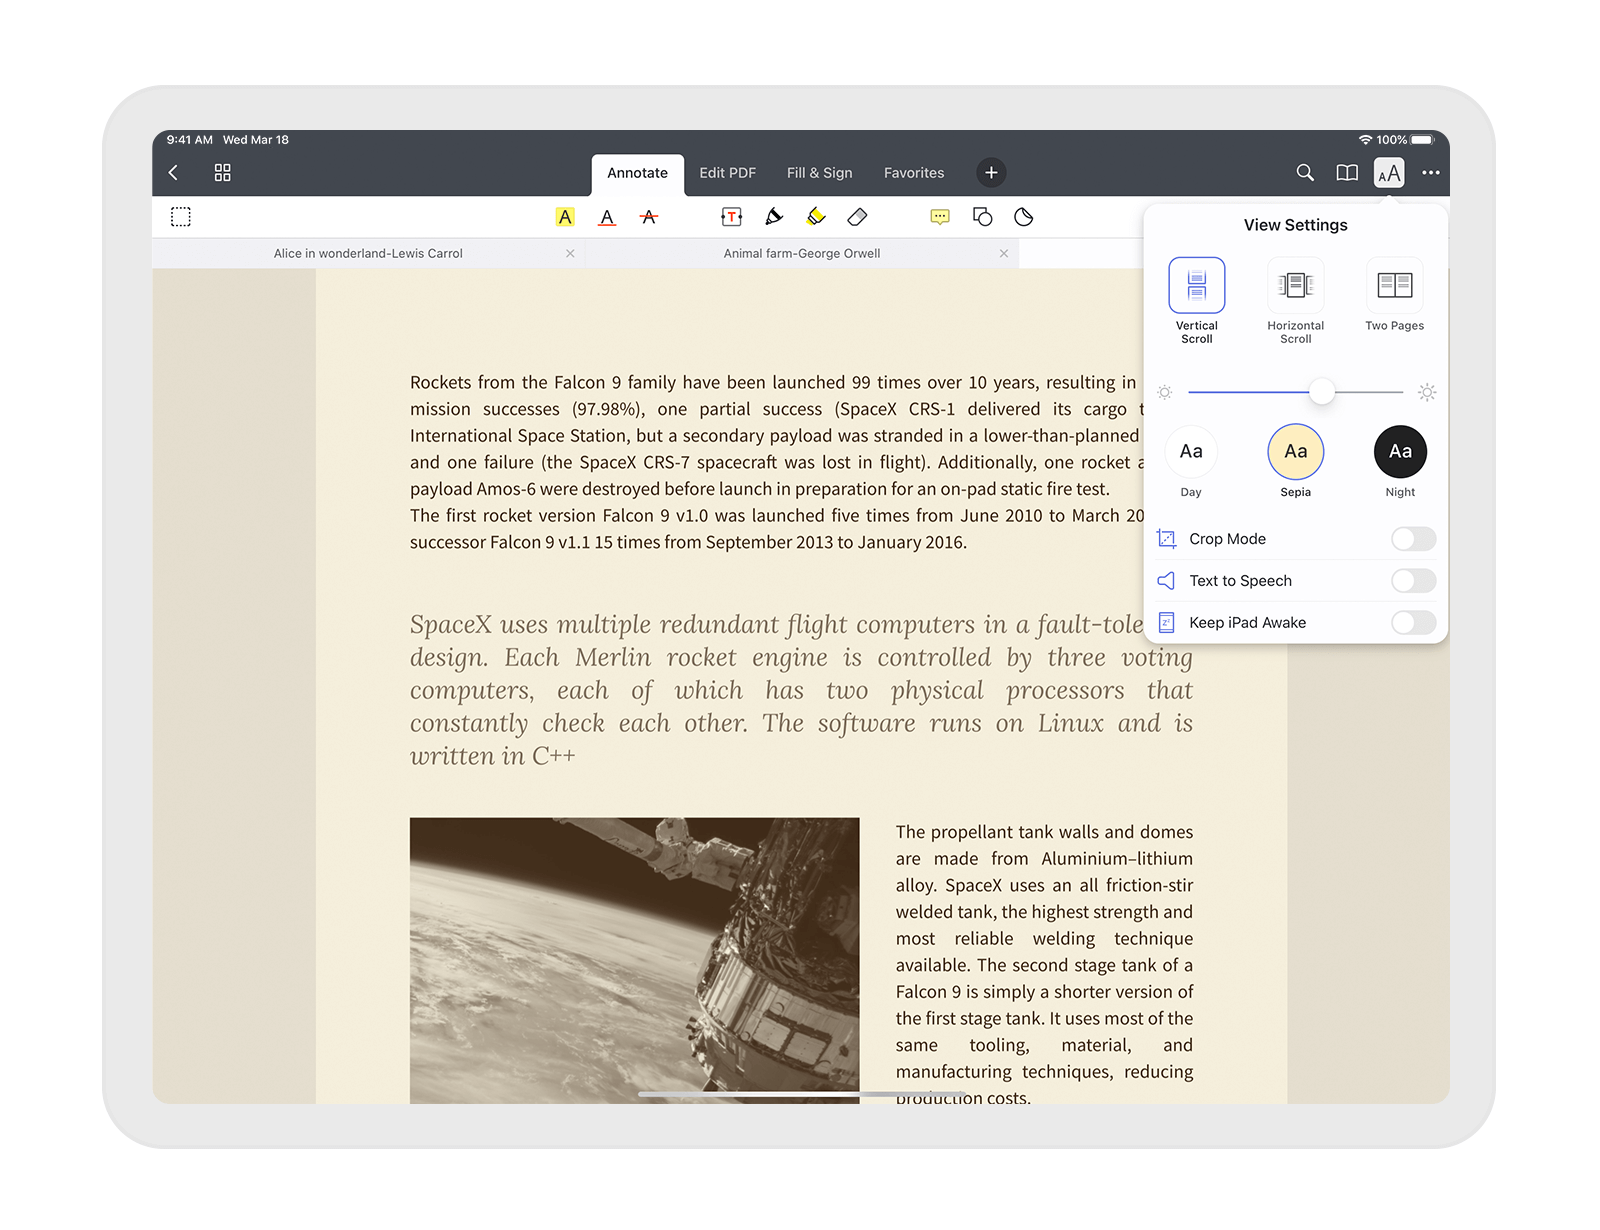 Reading Options in Documents on iPhone and iPad